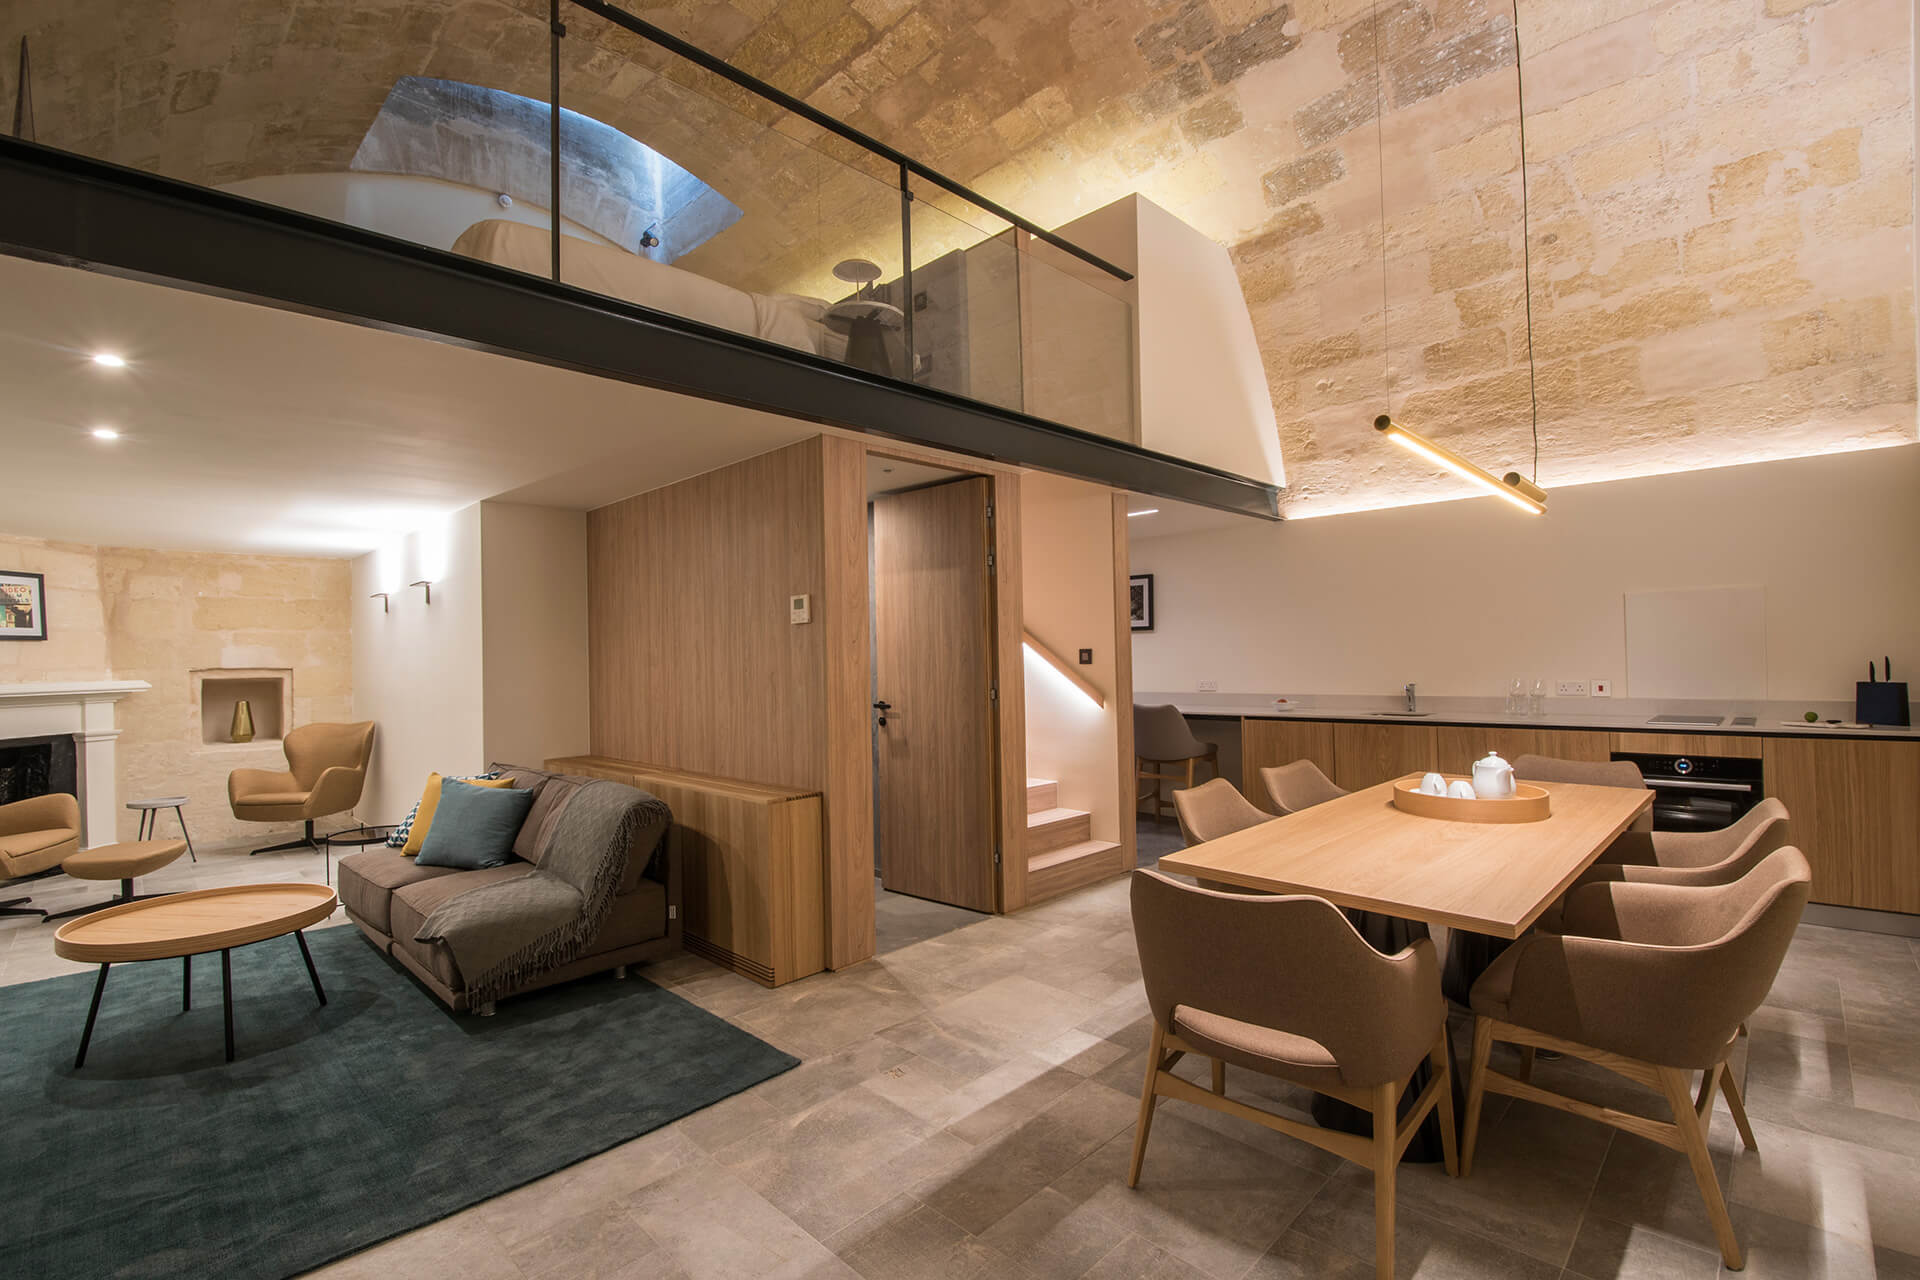 Macina Grand Harbour Suite Kitchenette and Lounge from main door | DAAA Haus wins German Design Award 2020 for Cugó Gran Macina Grand Harbour | STIRworld